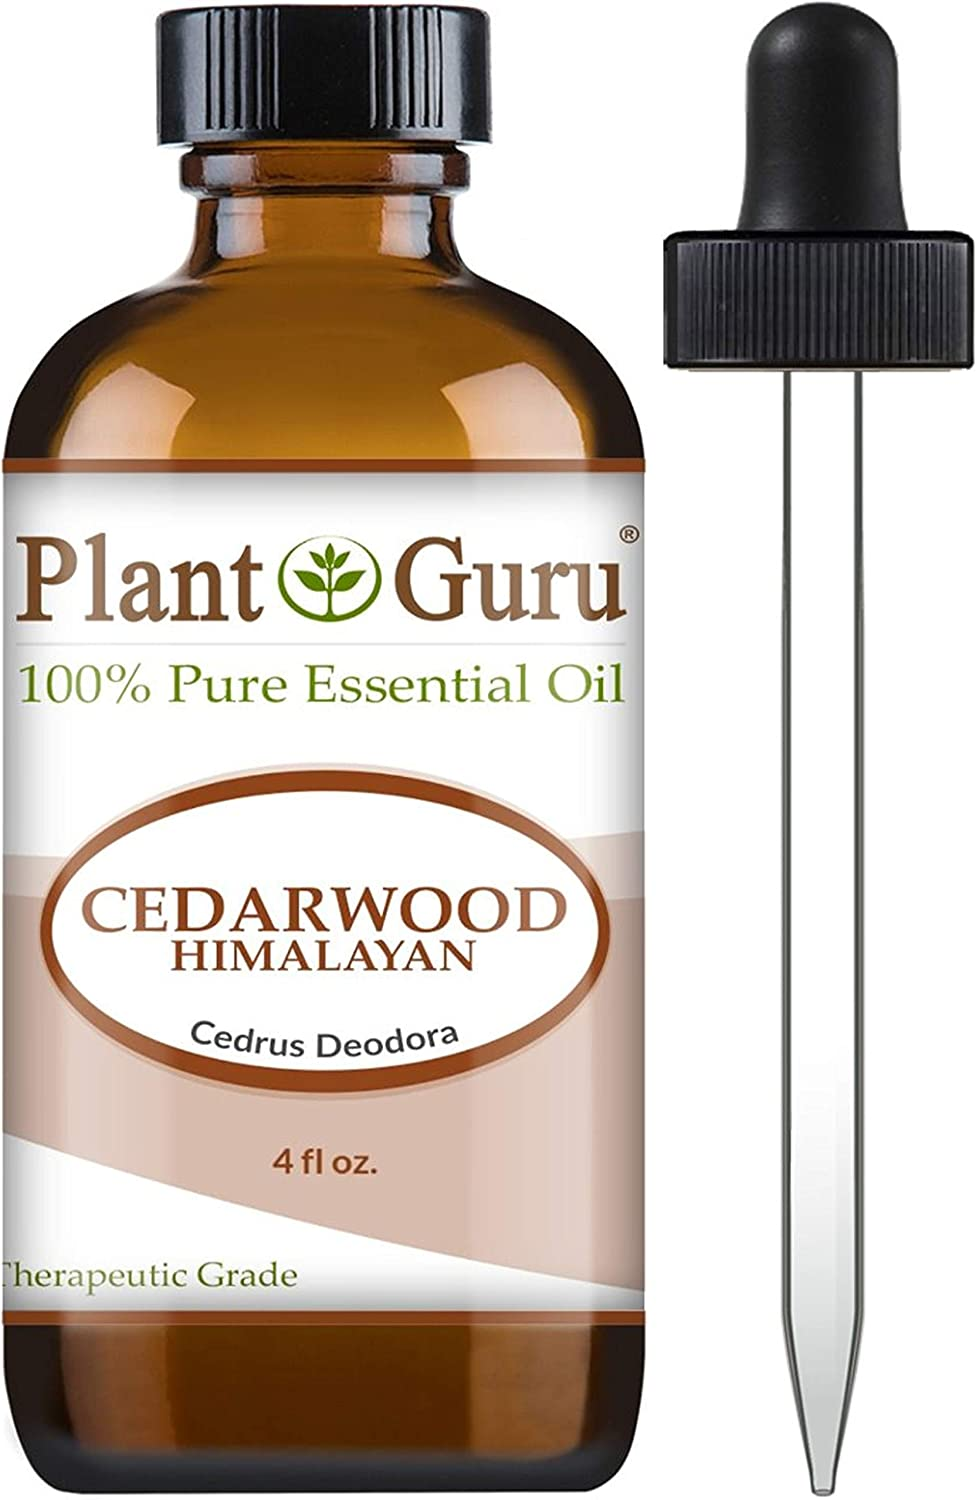 Cedarwood (Himalayan) Essential Oil 4 oz 100% Pure Undiluted Therapeutic Grade for Skin, Body and Hair Growth. Great for Aromatherapy Diffuser and DIY Soap Making essential oils for babies - 71yKAb6SlBL - Essential oils for babies – sleep-inducing essential oils